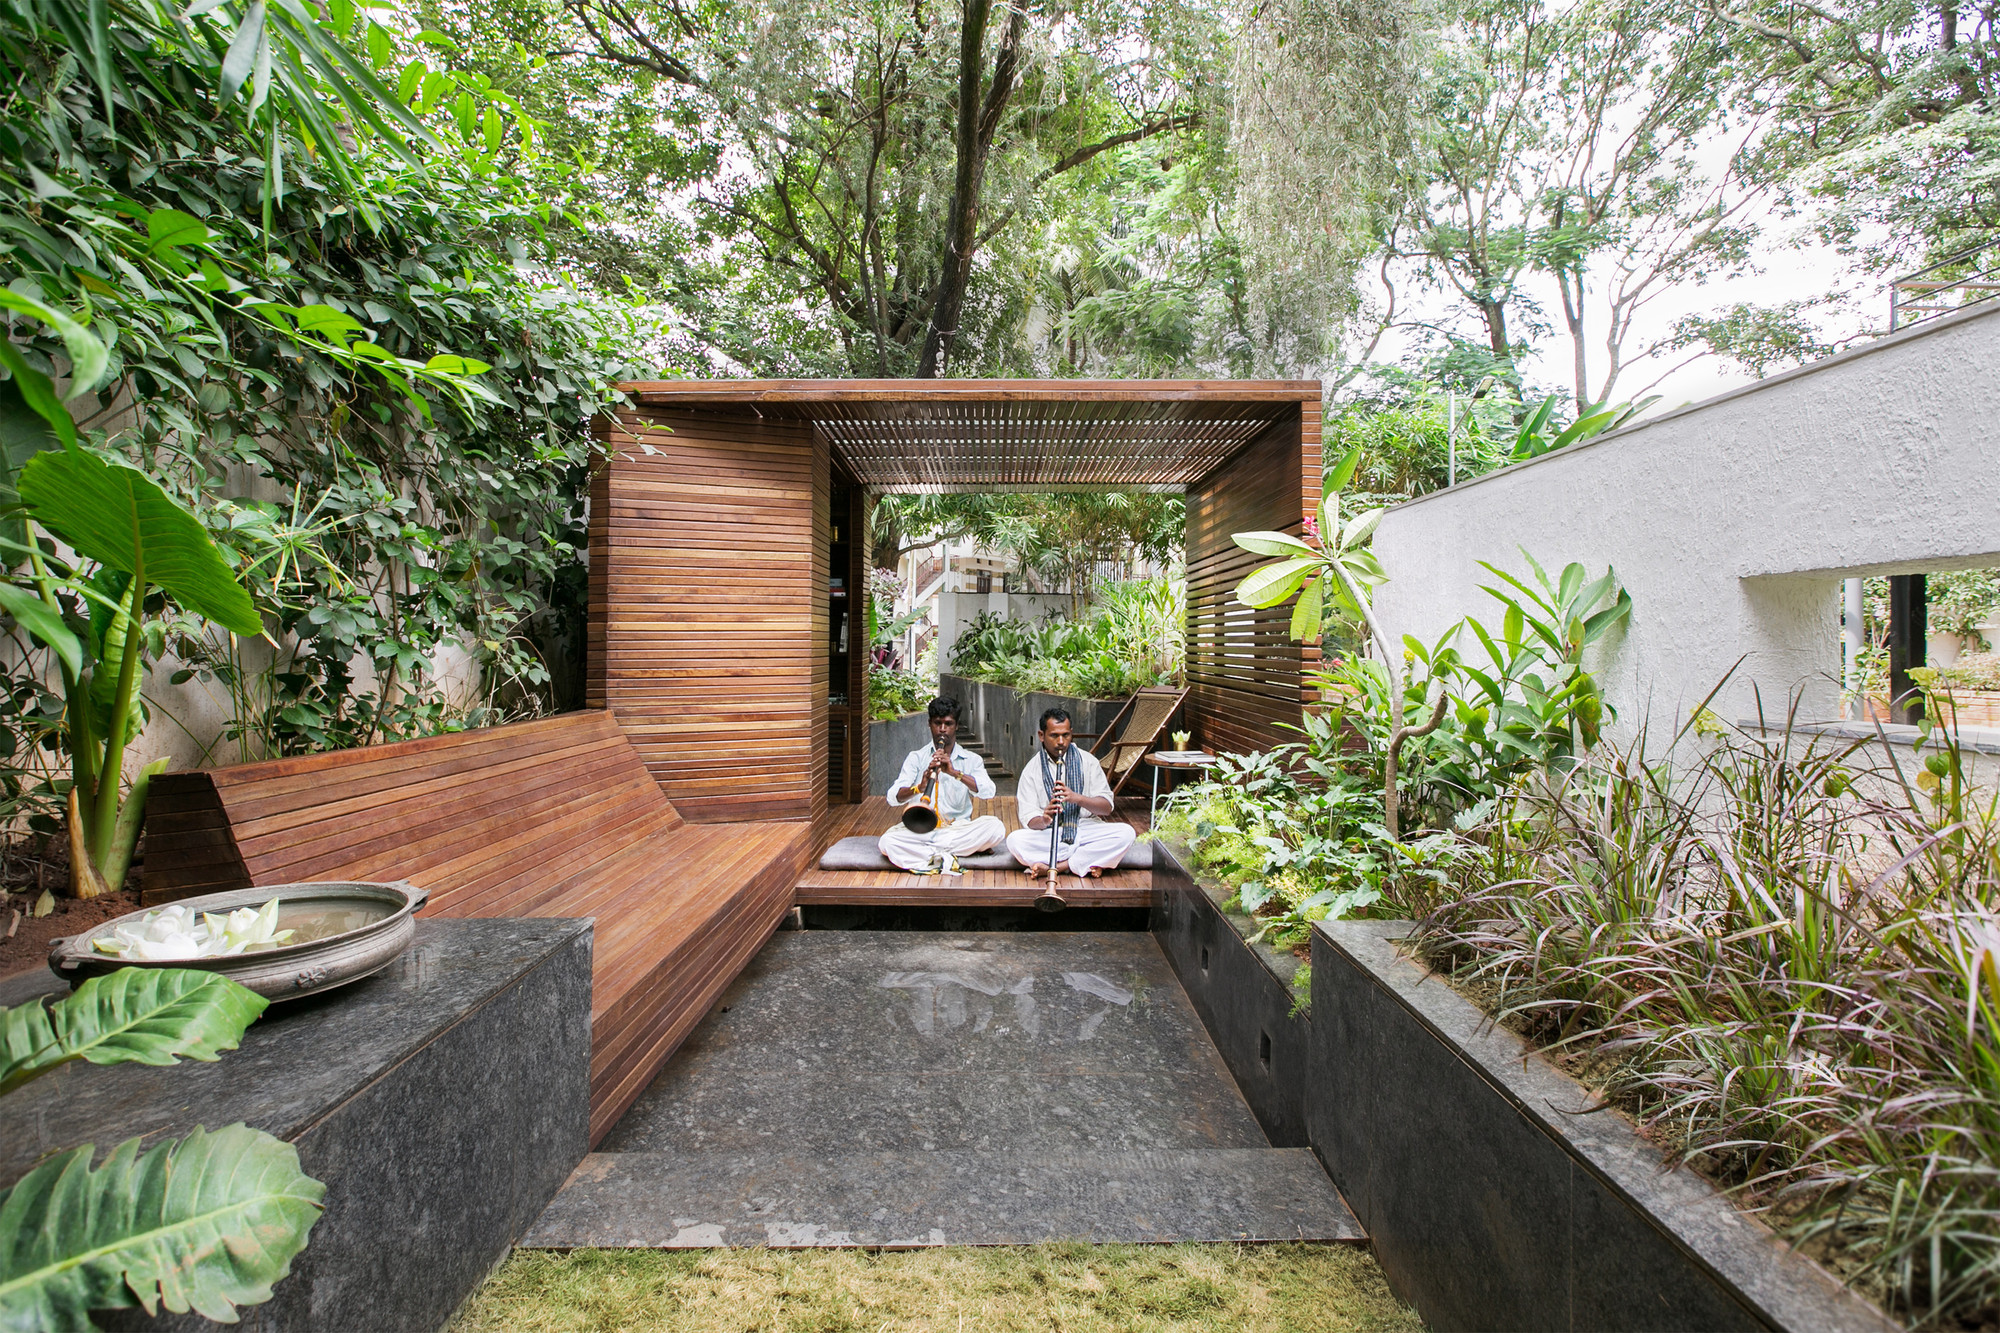 Beau Architectural Design Ideas For Garden: Pavilion In A Garden By Collective  Project, India